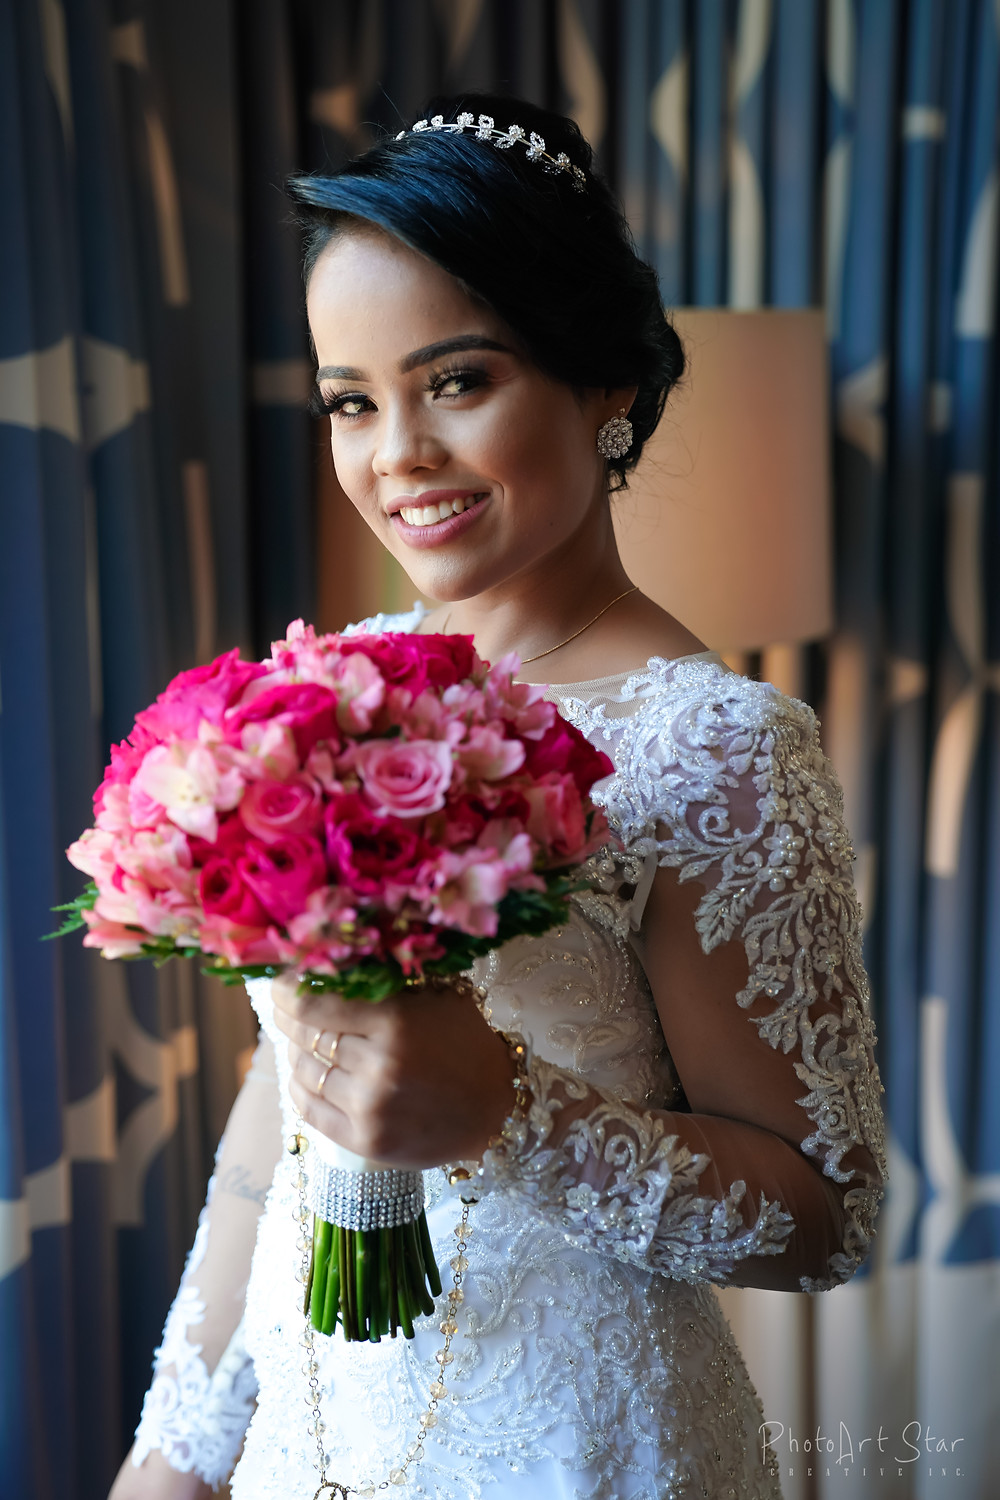 We got a chance to be part of amazing Brazilian wedding. Getting ready photos at Kimpton Monaco Hotel. If you planing your wedding, take a time to check this hotel. You will definitely fall in love with this place.